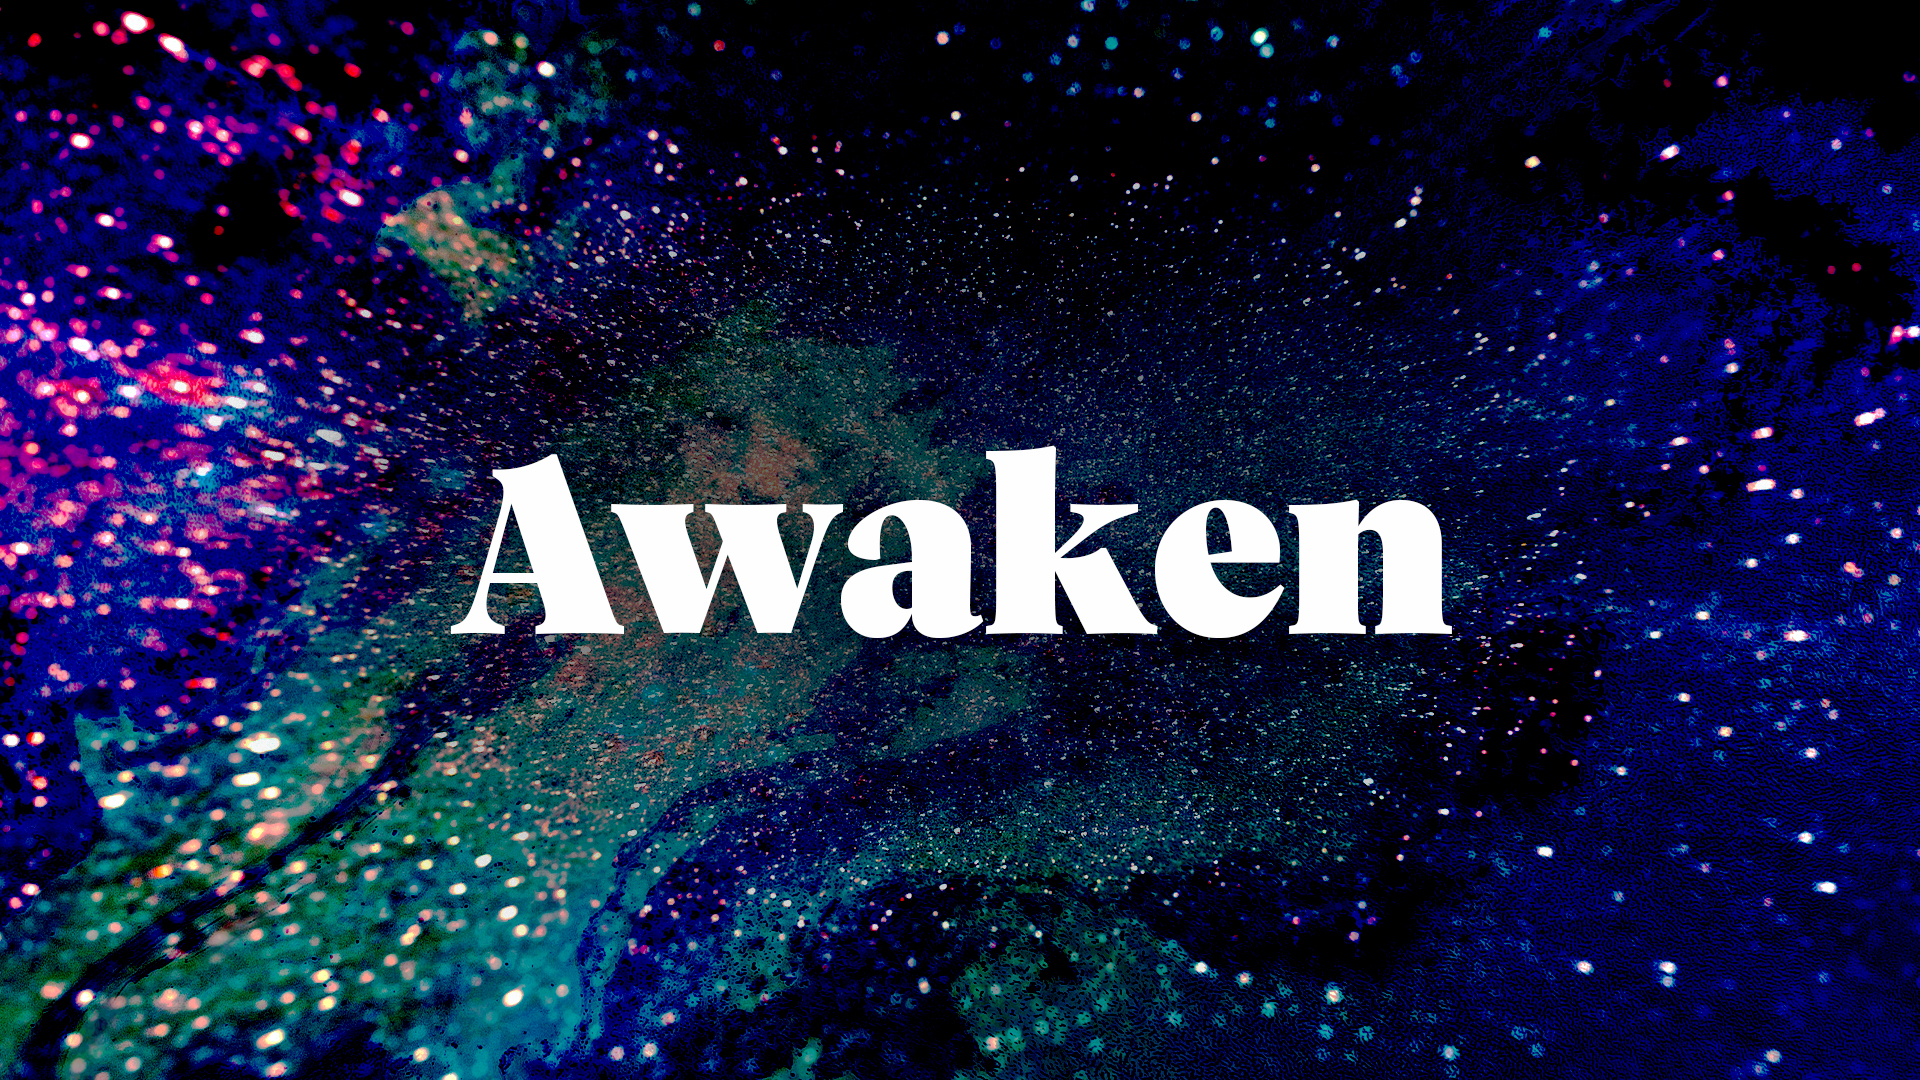 The Awaken Season